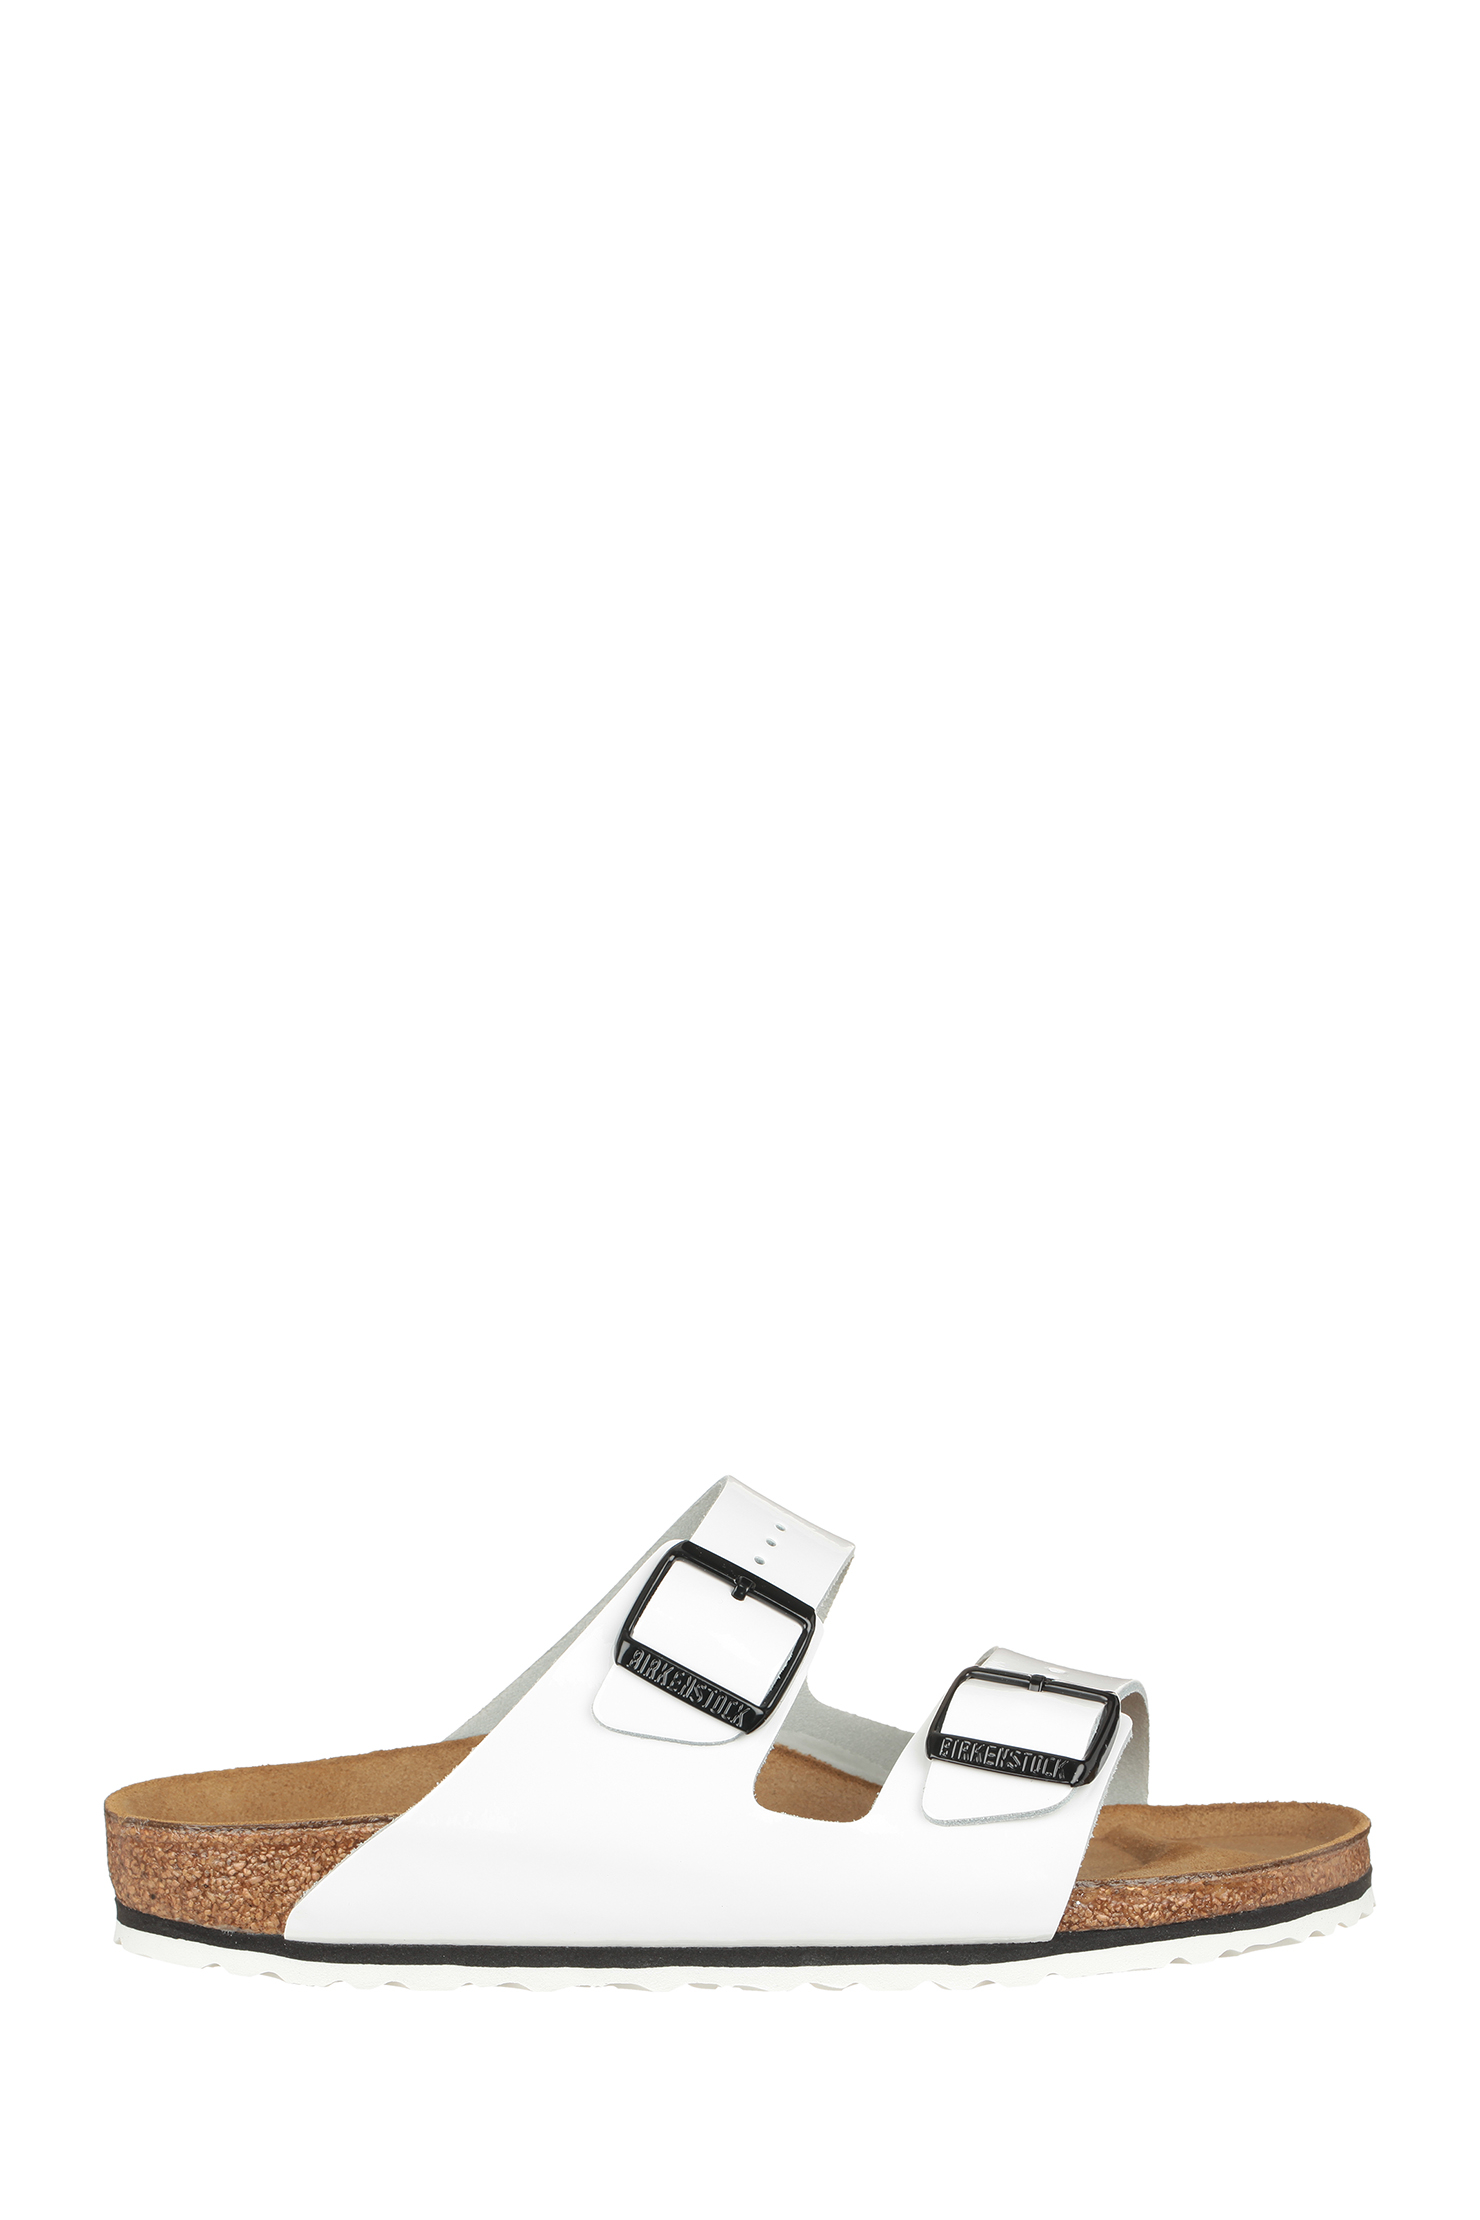 Awesome Details About Birkenstock Madrid Womens Slip On Sandals Shoes White